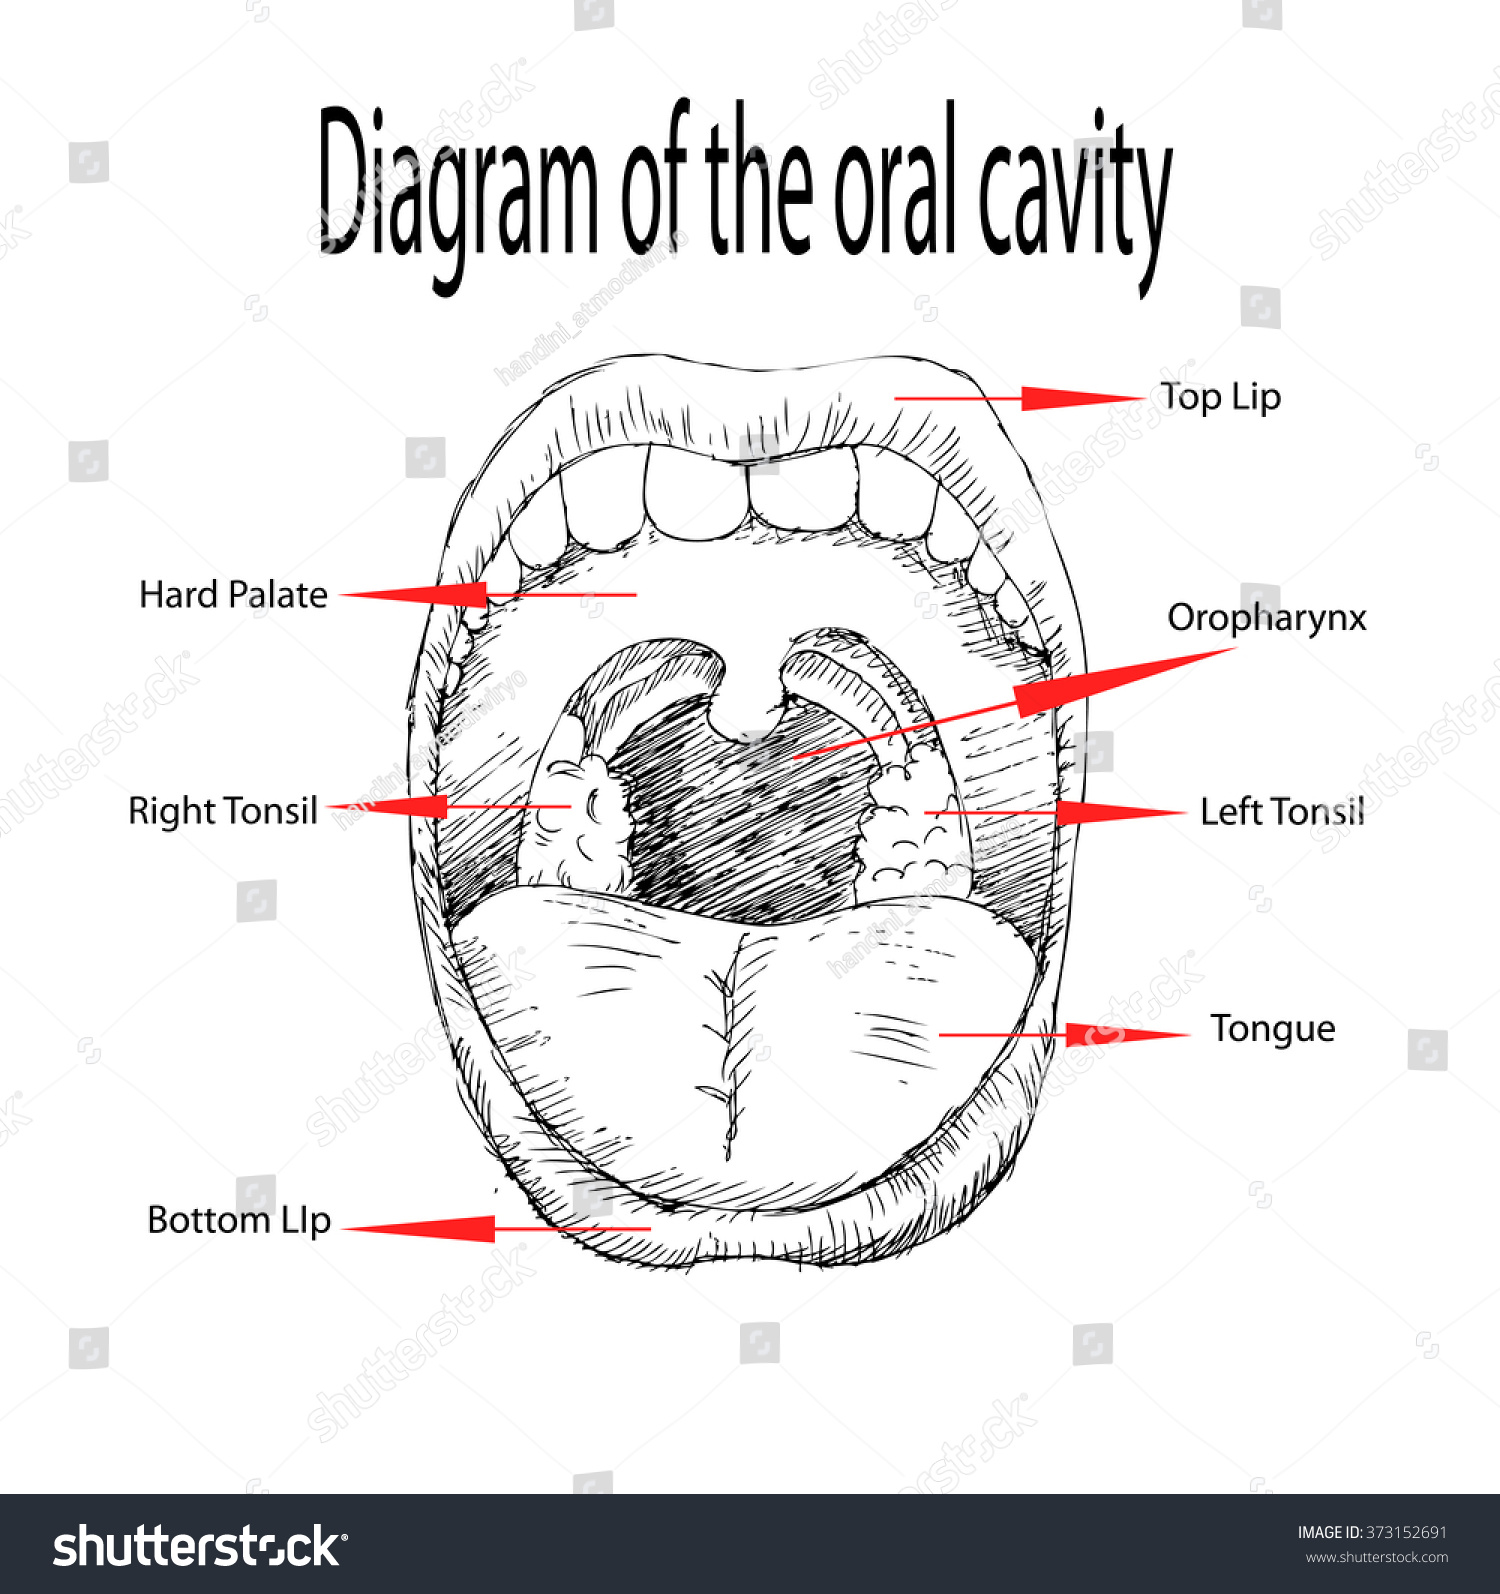 diagram oral cavity stock vector (royalty free) 373152691 - shutterstock